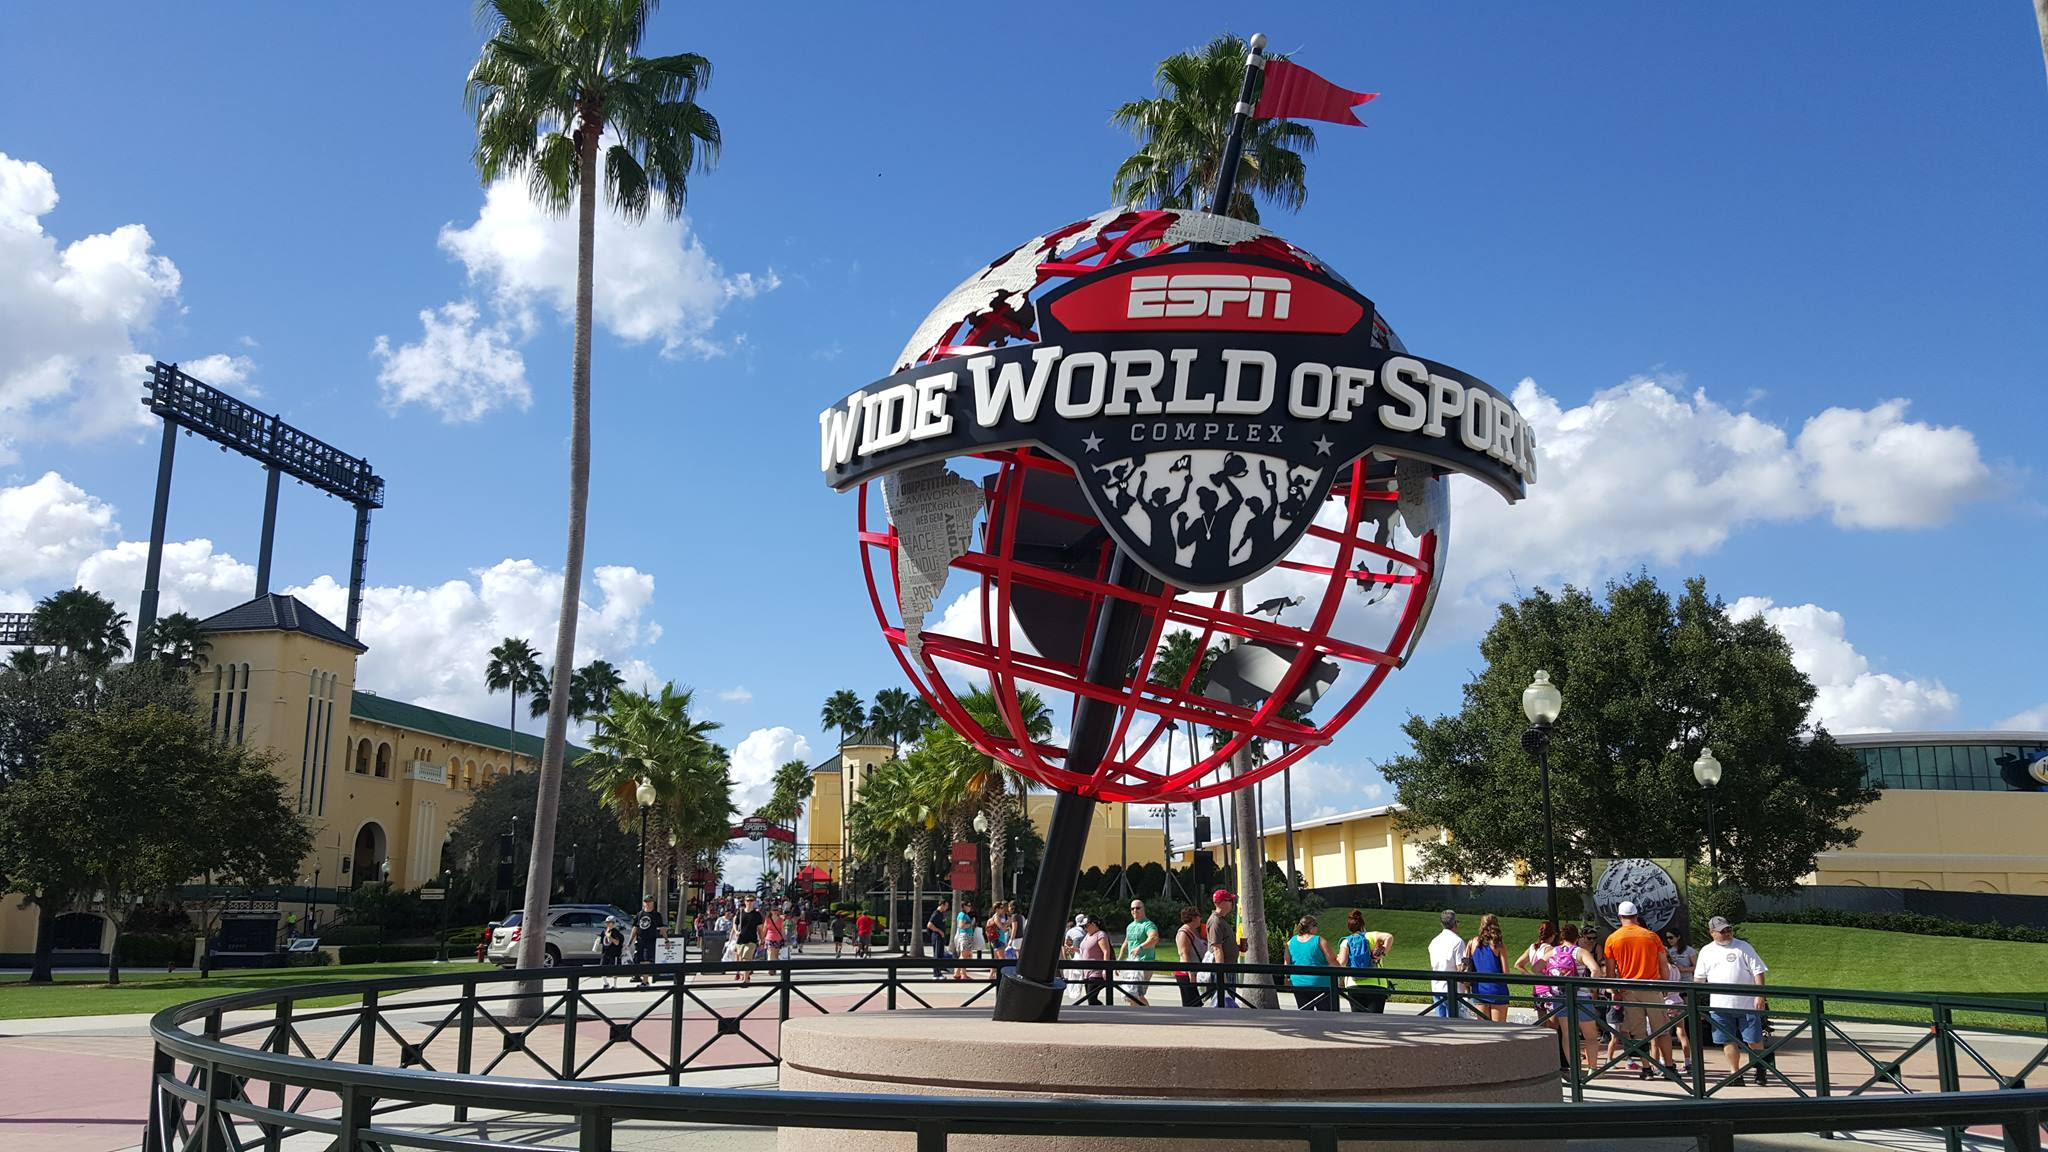 Cheerleading Venue To Open At Disney S Espn Wide World Of Sports Complex